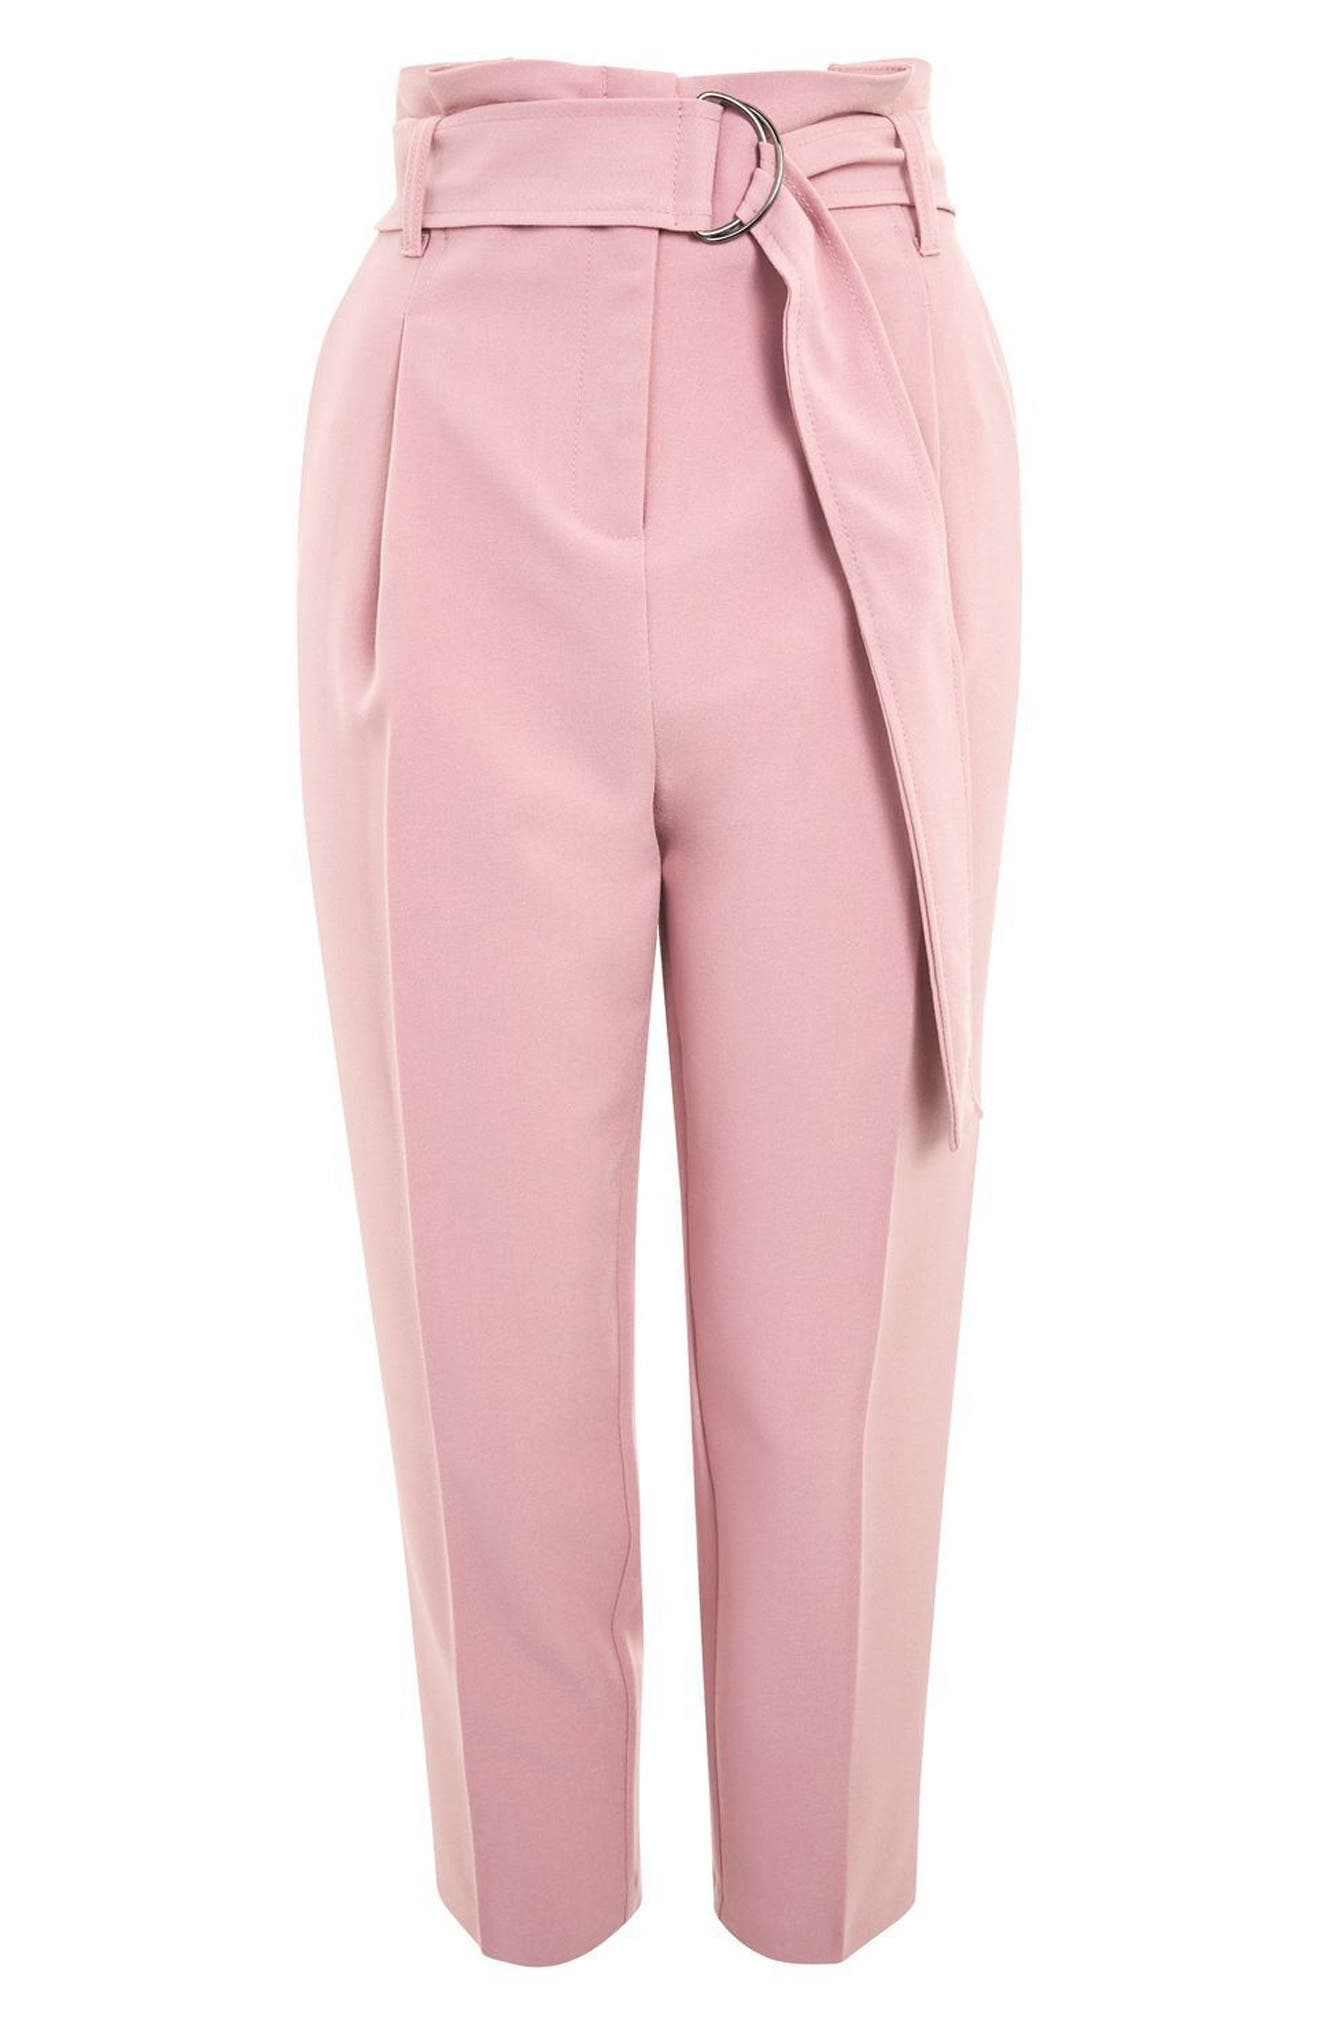 Paperbag Waist Trousers,                             Alternate thumbnail 4, color,                             Pink